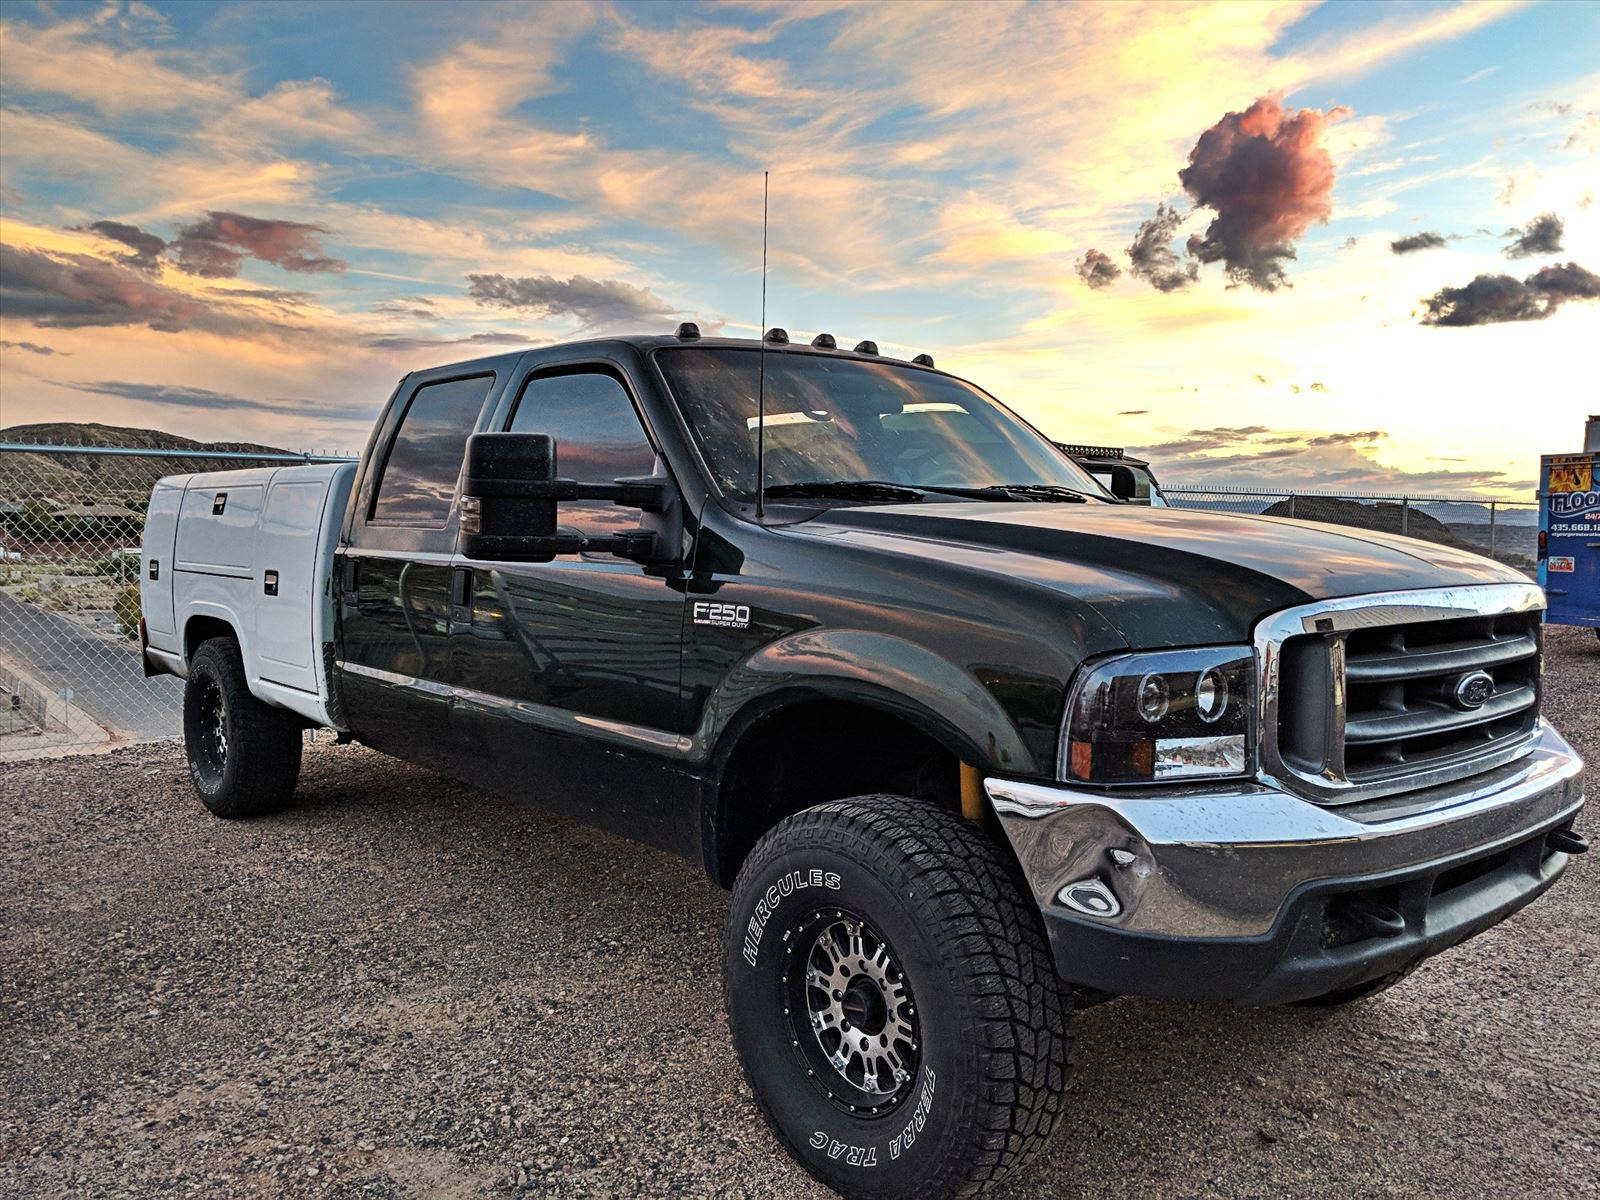 Ford F250 Adventure Truck - Exterior Photo